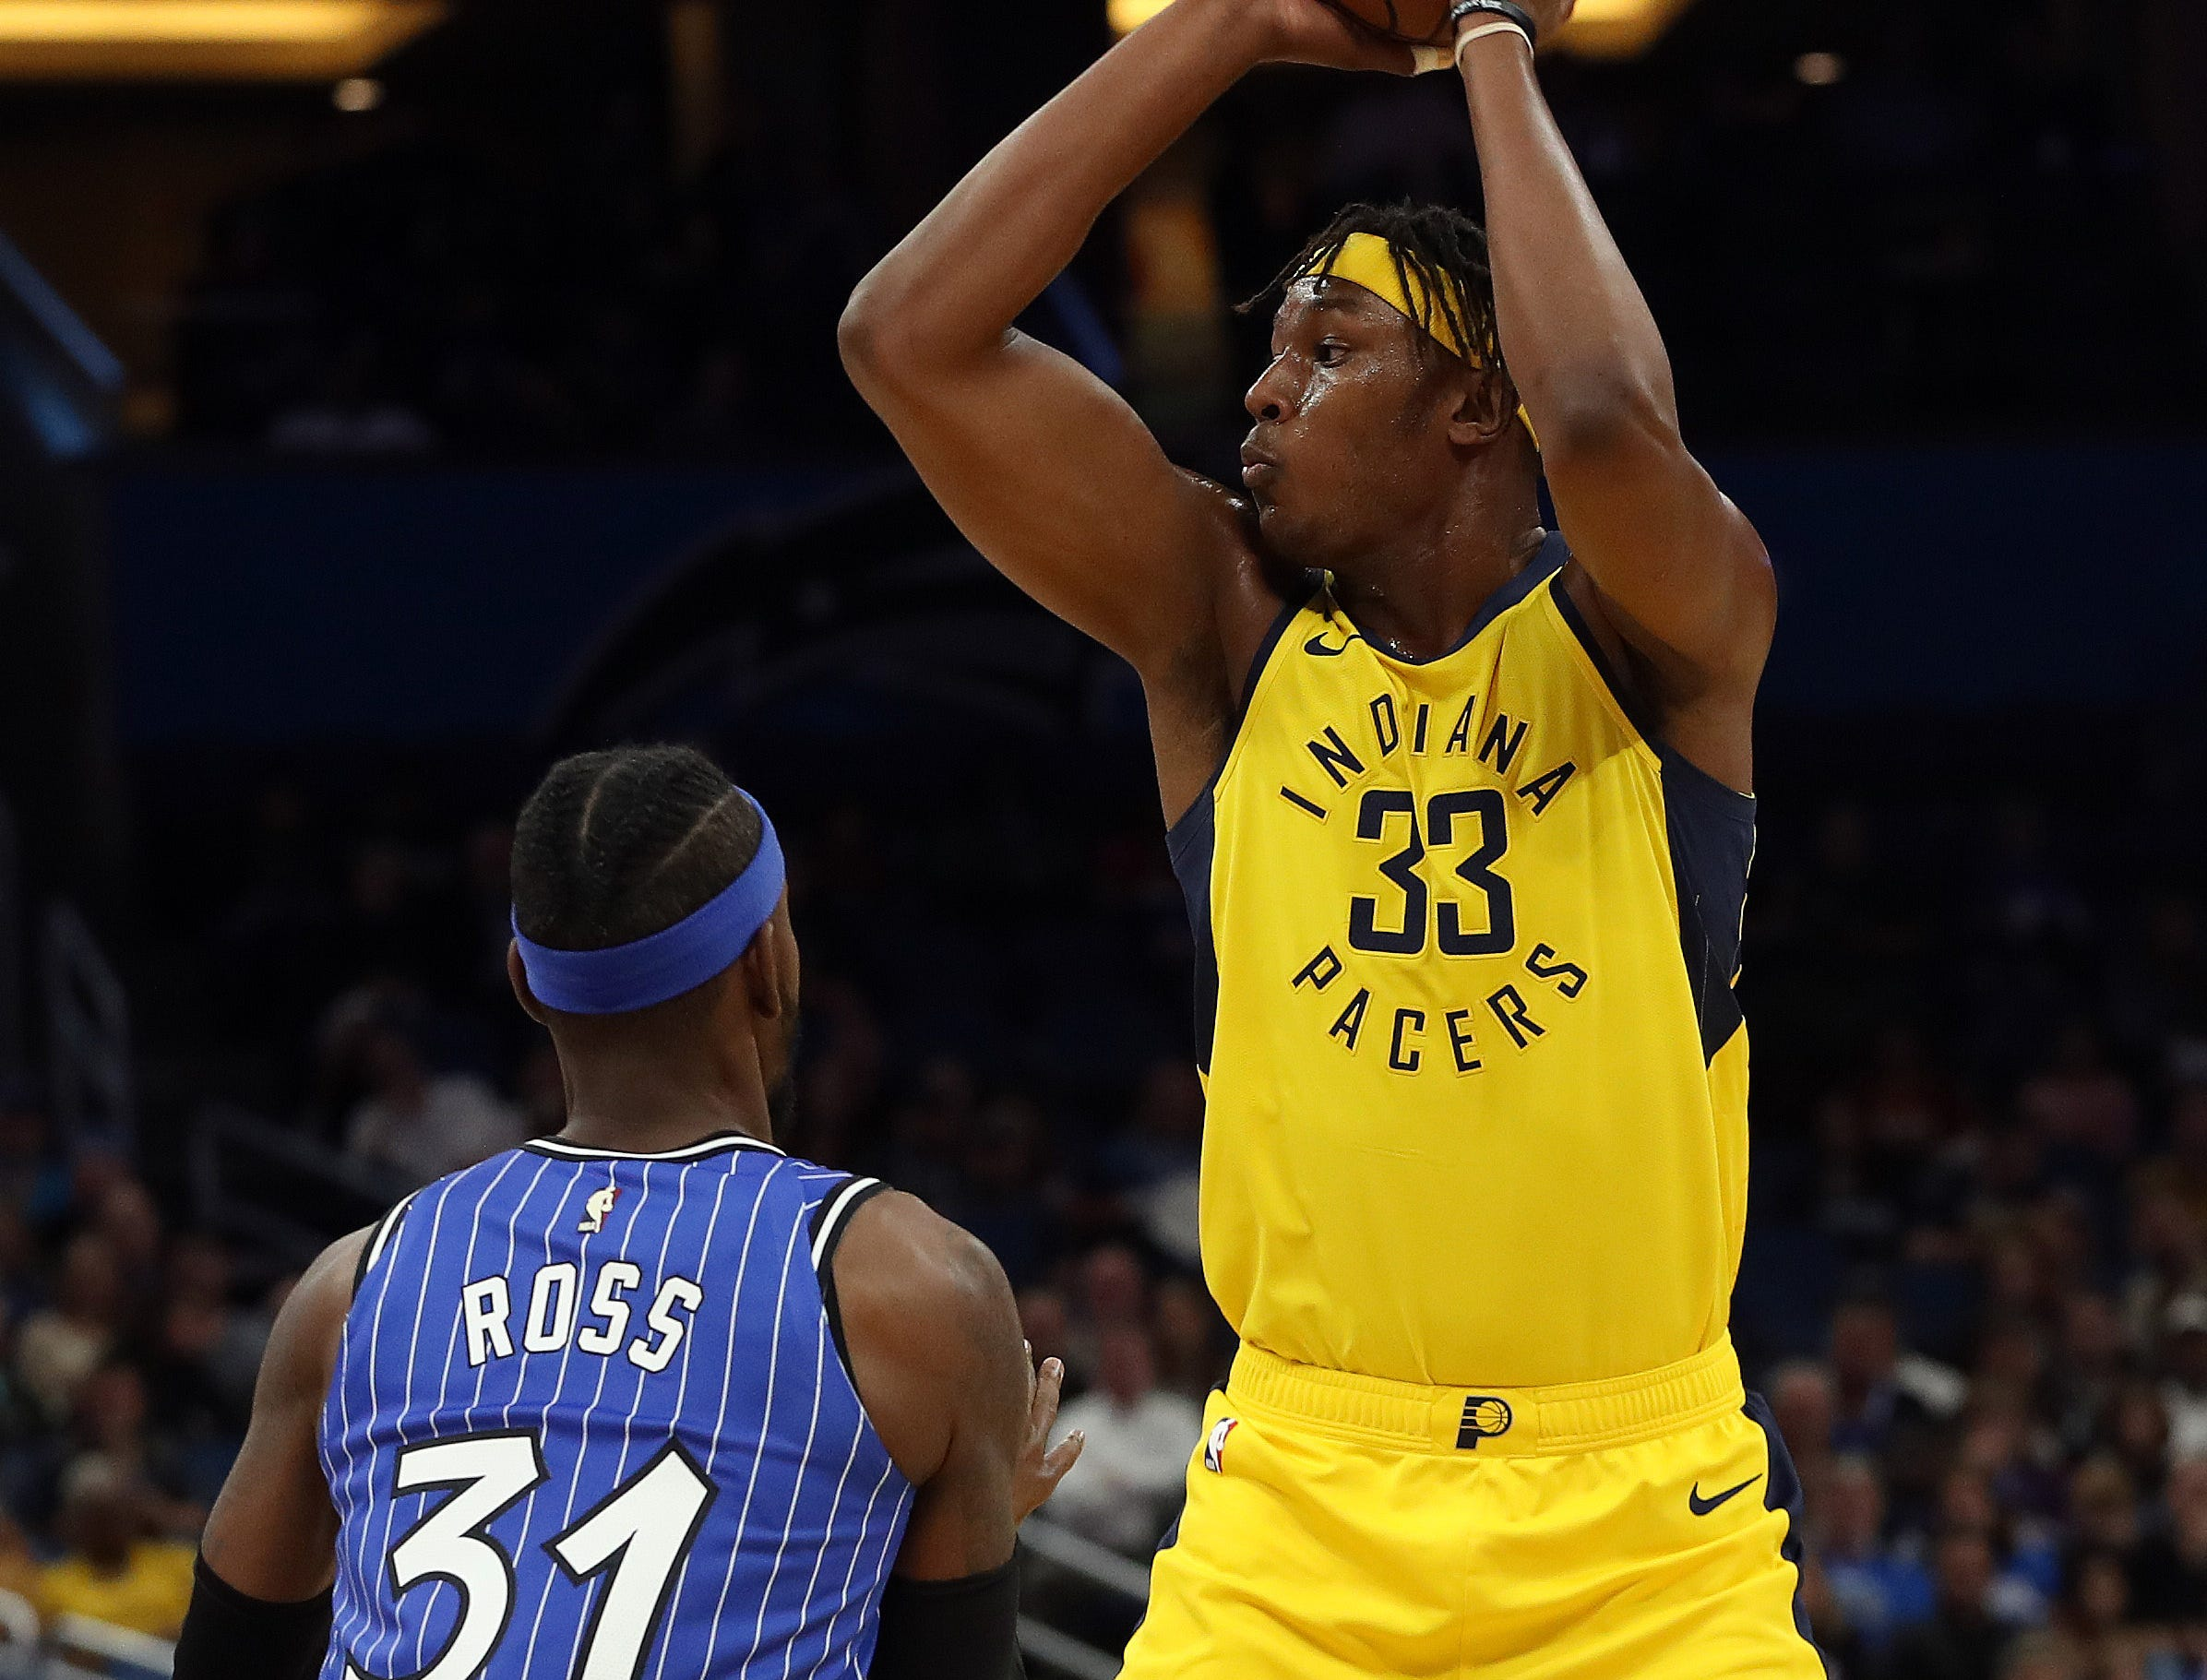 Dec 7, 2018; Orlando, FL, USA; Indiana Pacers center Myles Turner (33) passes the ball as Orlando Magic guard Terrence Ross (31) defends during the first quarter at Amway Center. Mandatory Credit: Kim Klement-USA TODAY Sports